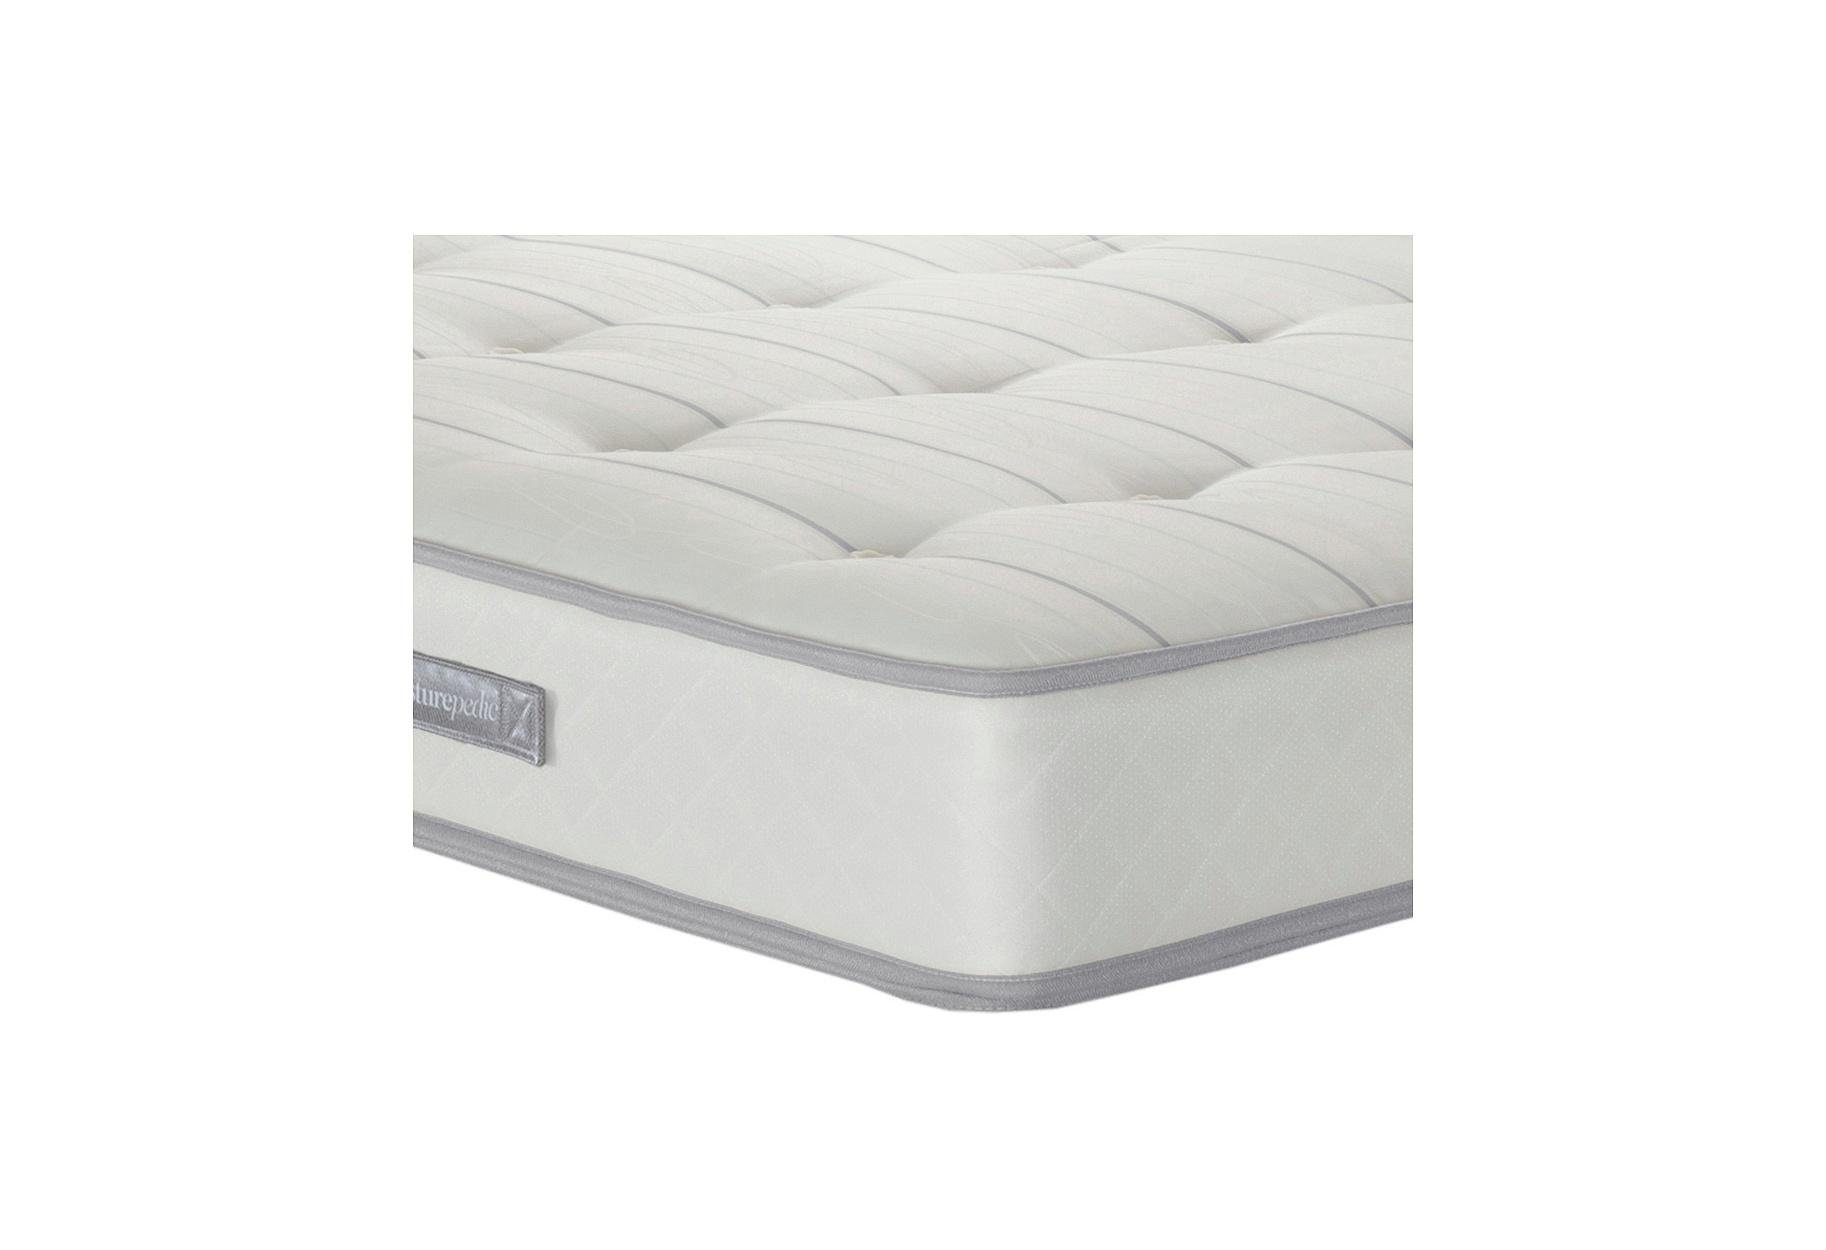 Sealy Posturepedic Backcare Elite Mattress Sealy Posturepedic Firm Ortho Double Memory Foam Mattress